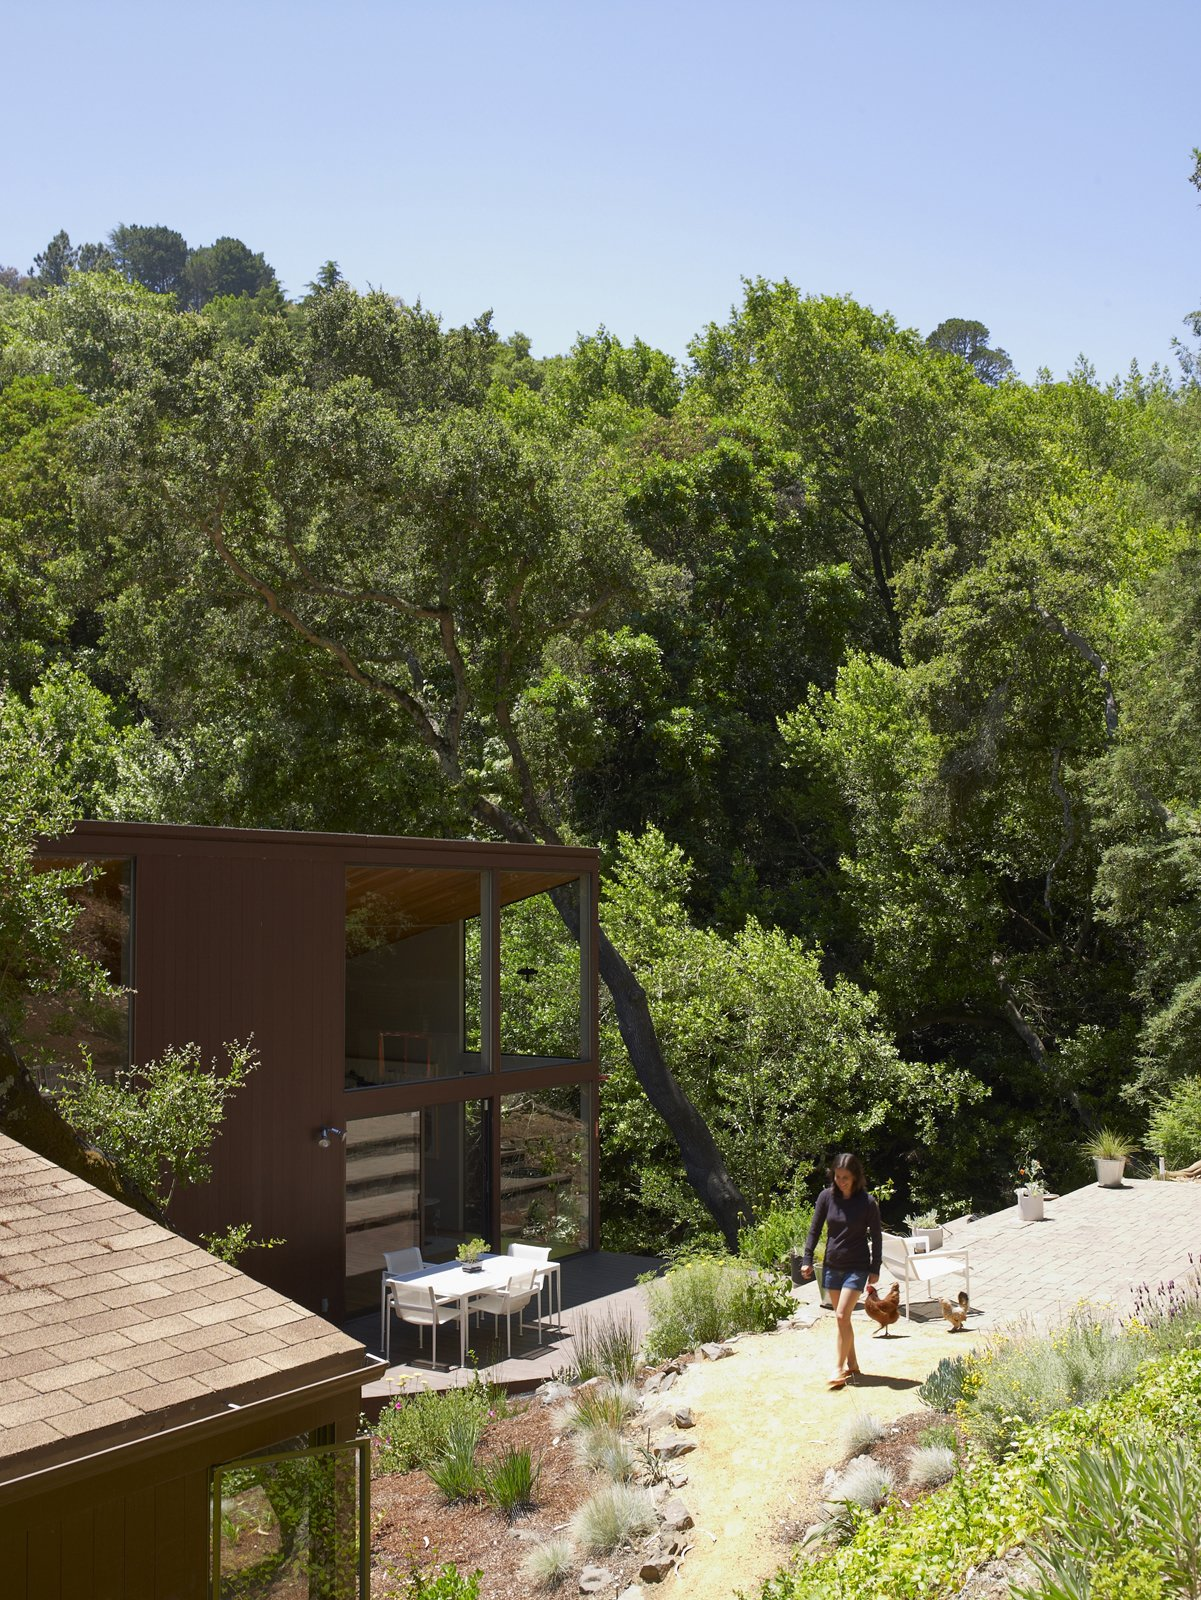 Exterior and House Building Type There's little concern about privacy considering the canopy of trees that surrounds the house. Alexander, and the chickens, take advantage of their sunny Northern Californian clime.  Outdoor